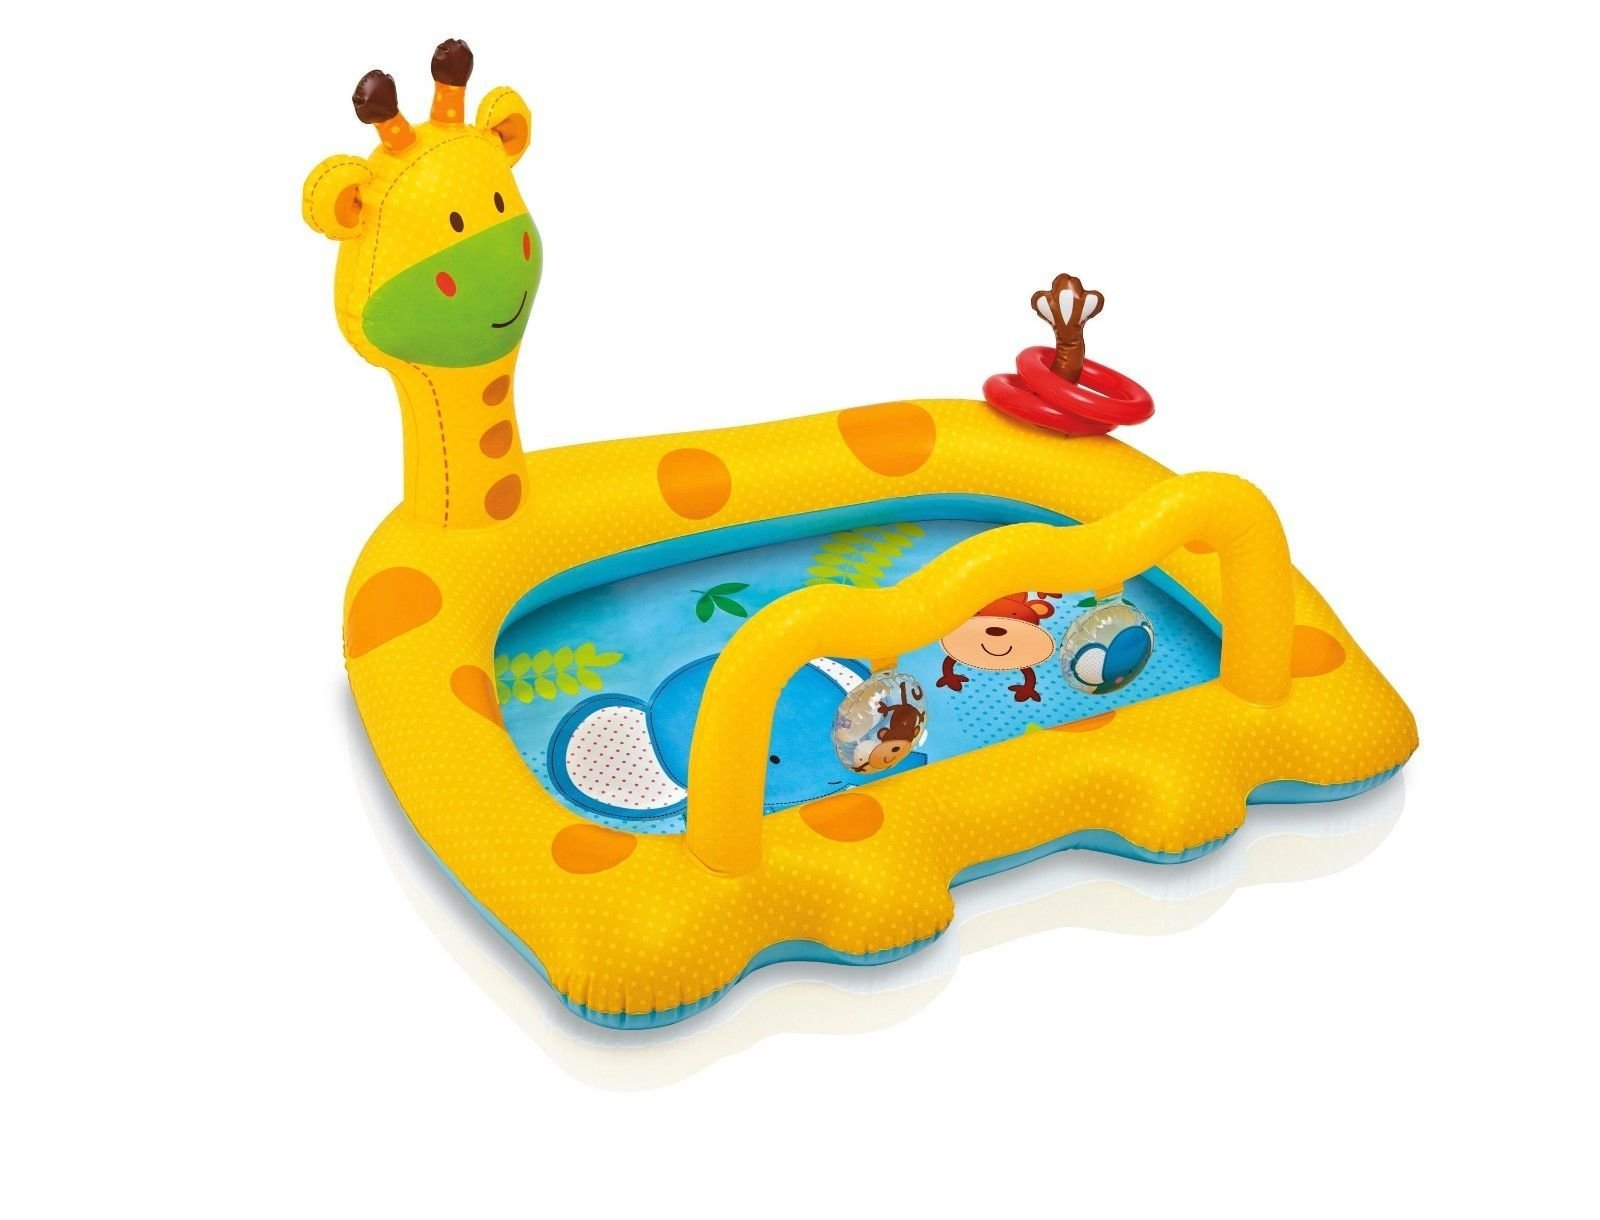 Intex Smiley Giraffe Inflatable Baby Pool, 44'' X 36'' X 28.5'', for Ages 1-3